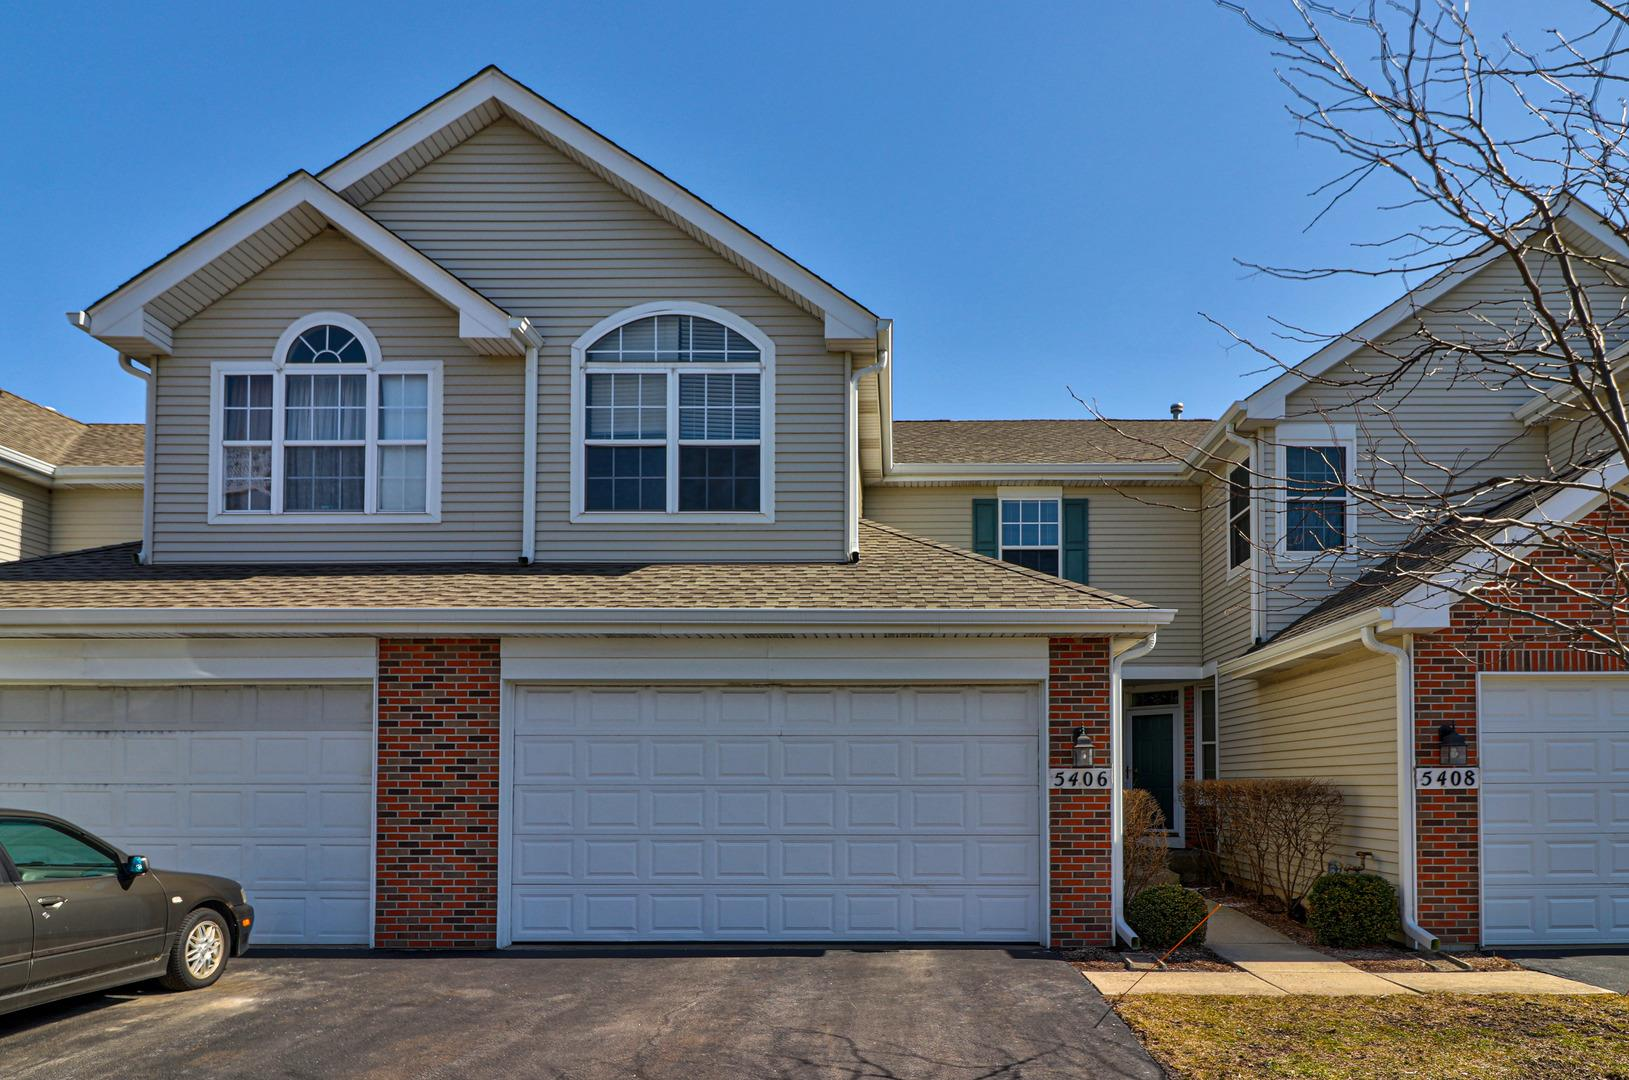 5406 Bayberry Court, Rolling Meadows, IL 60008 - #: 11020385